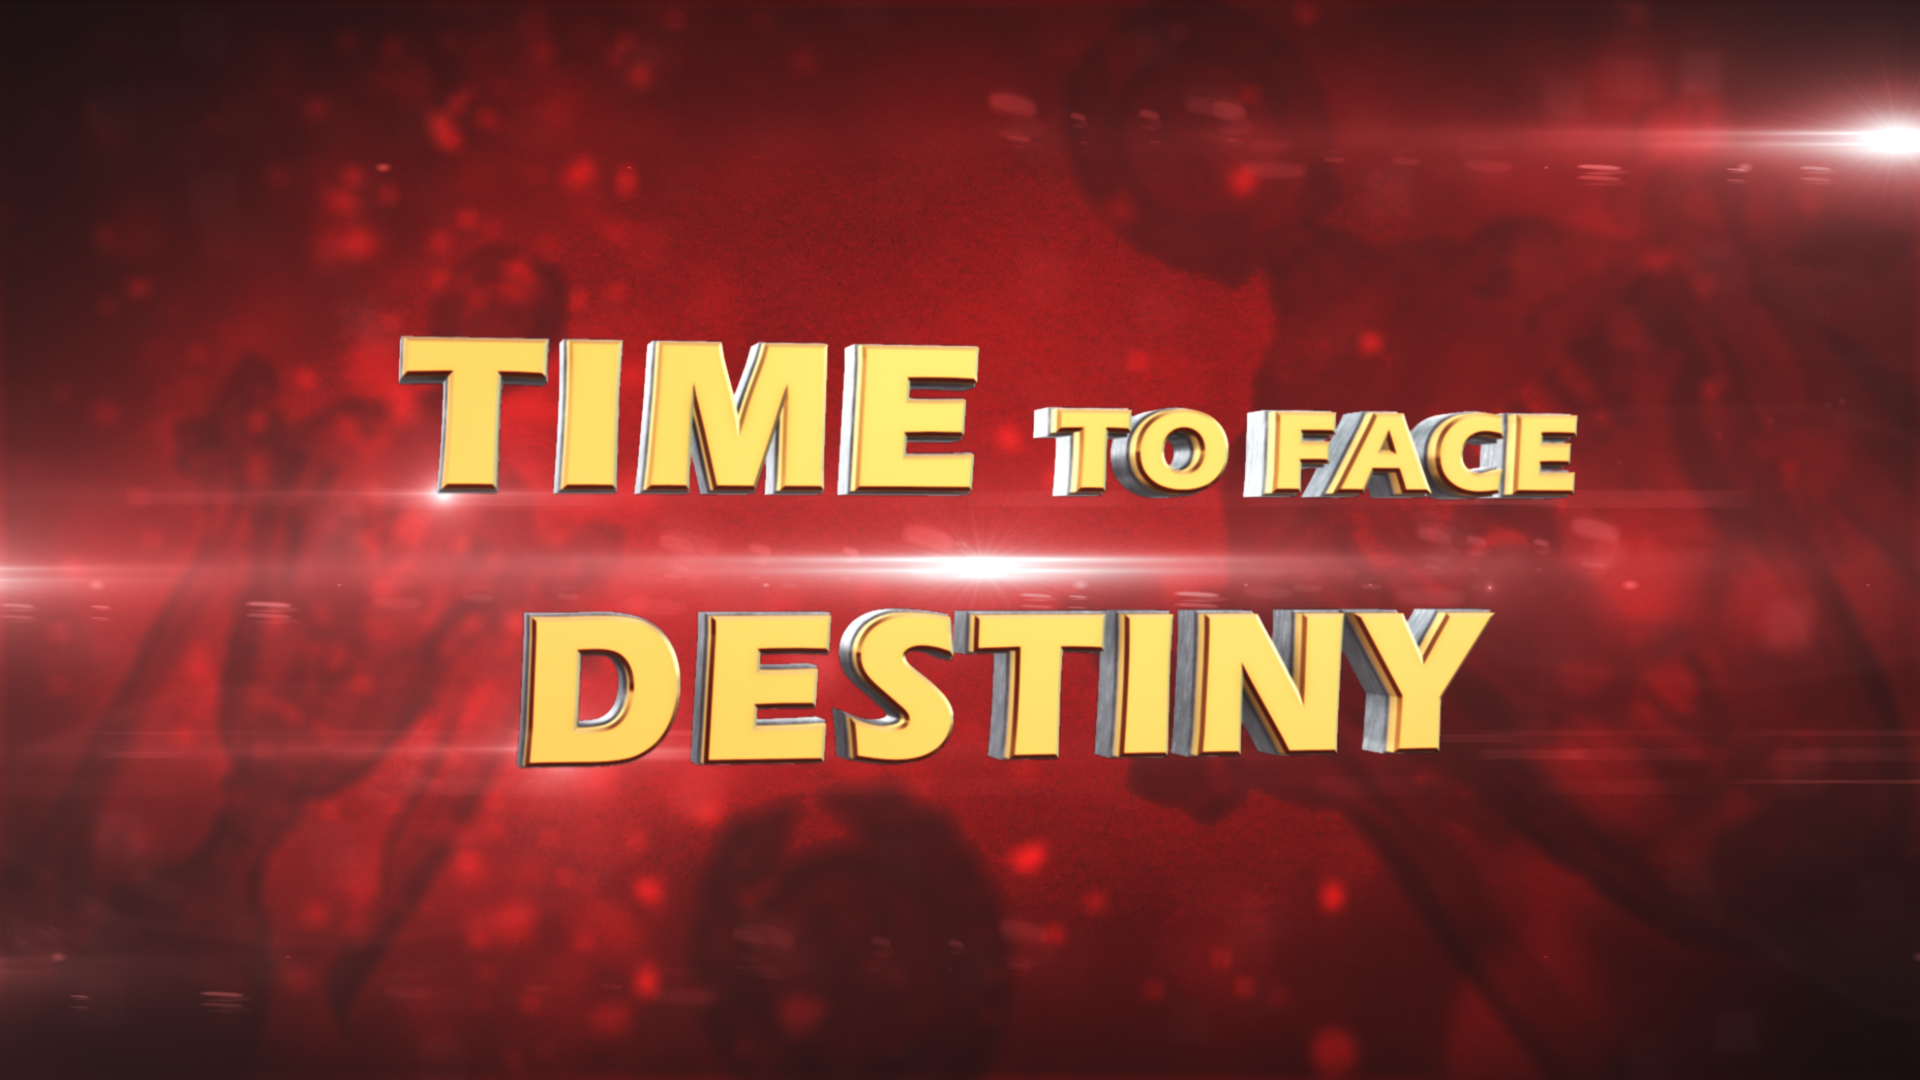 Time To Face Destiny